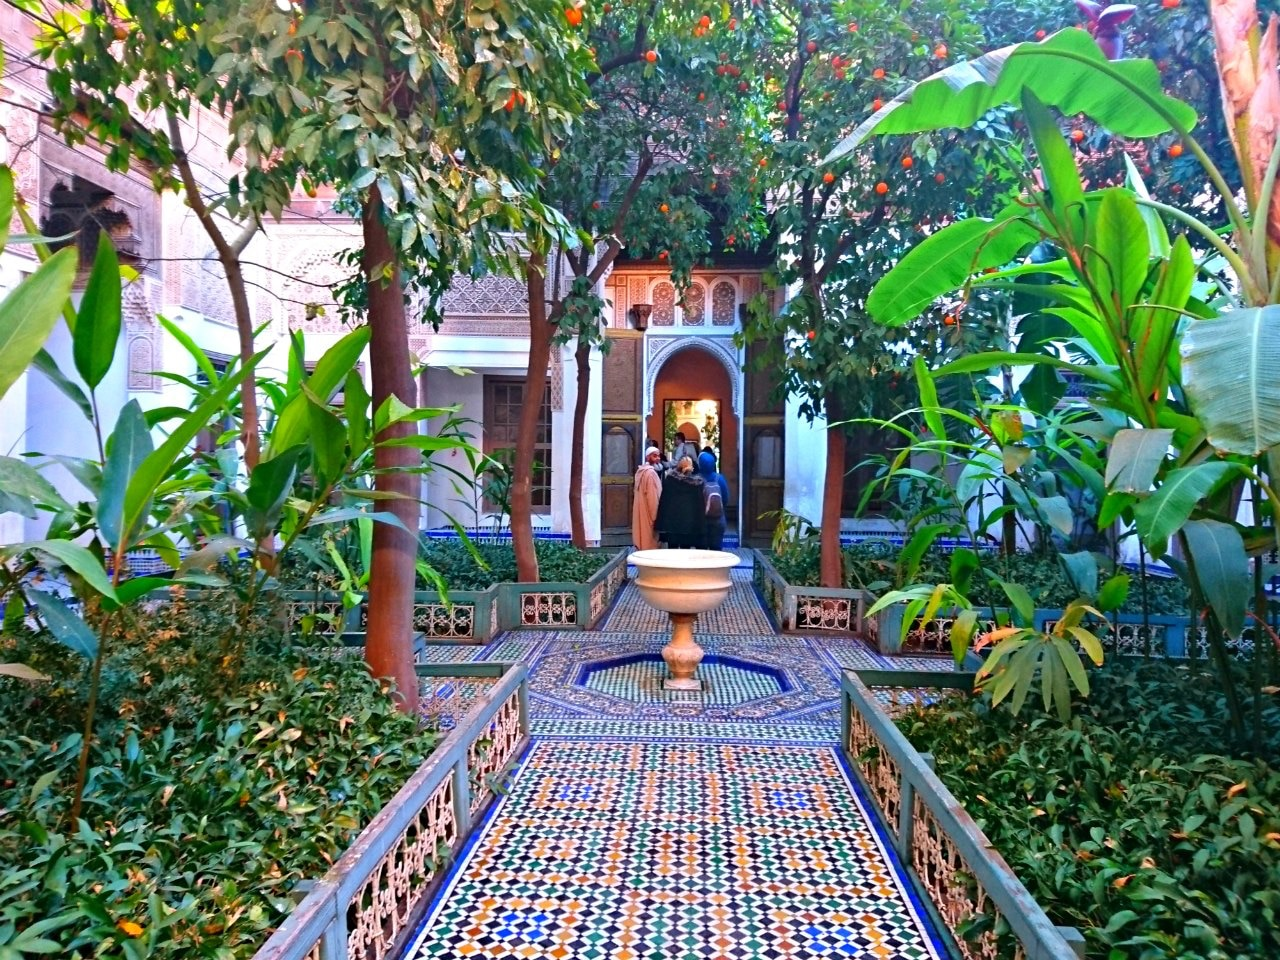 marion_escape from realtity efr-bahia-palast-marrakesch